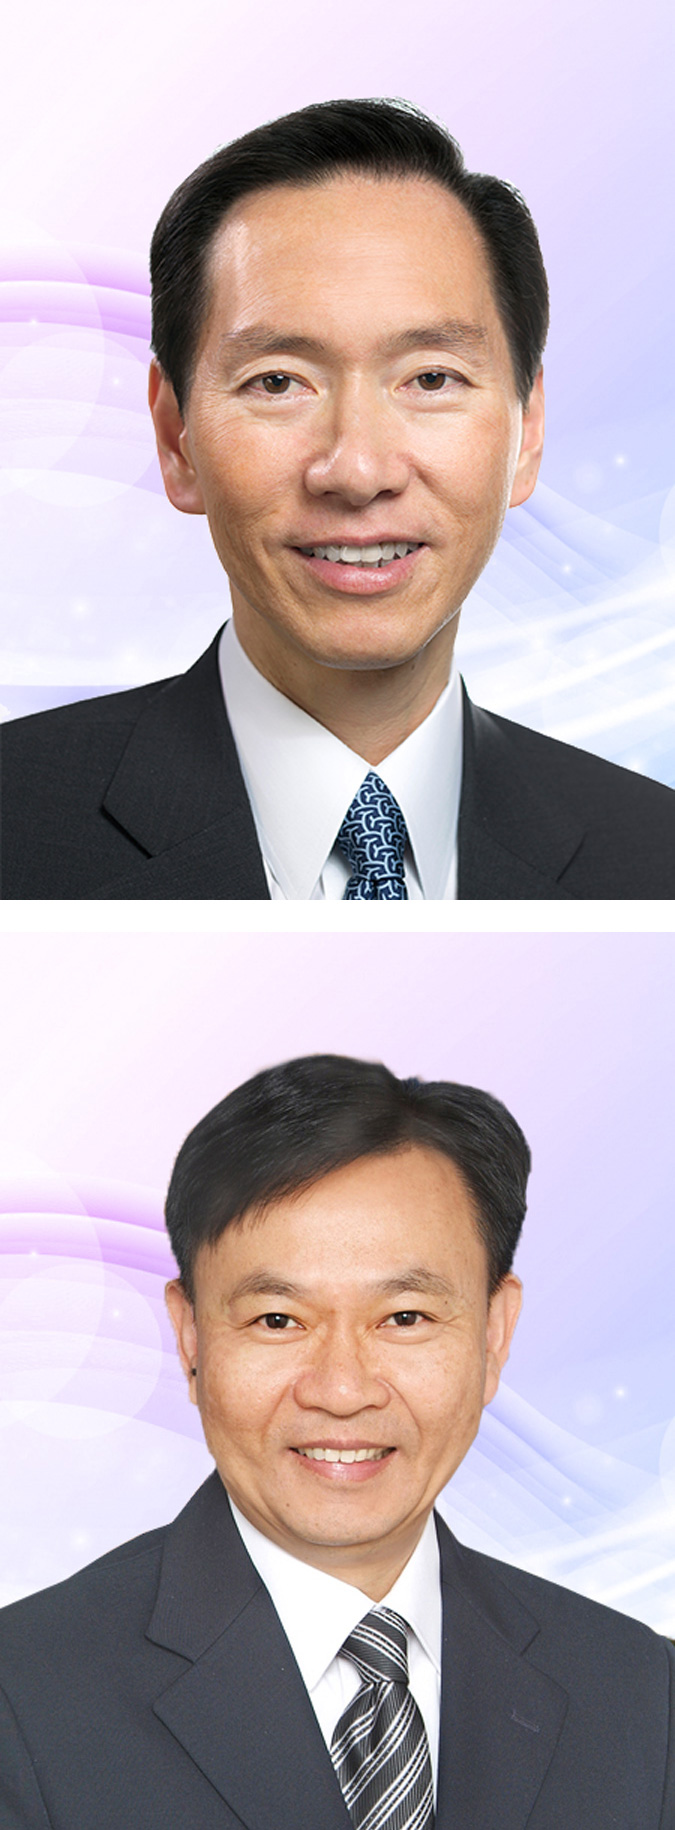 Dr the Honourable Bernard Charnwut Chan (top) and Dr Leung Pak-yin